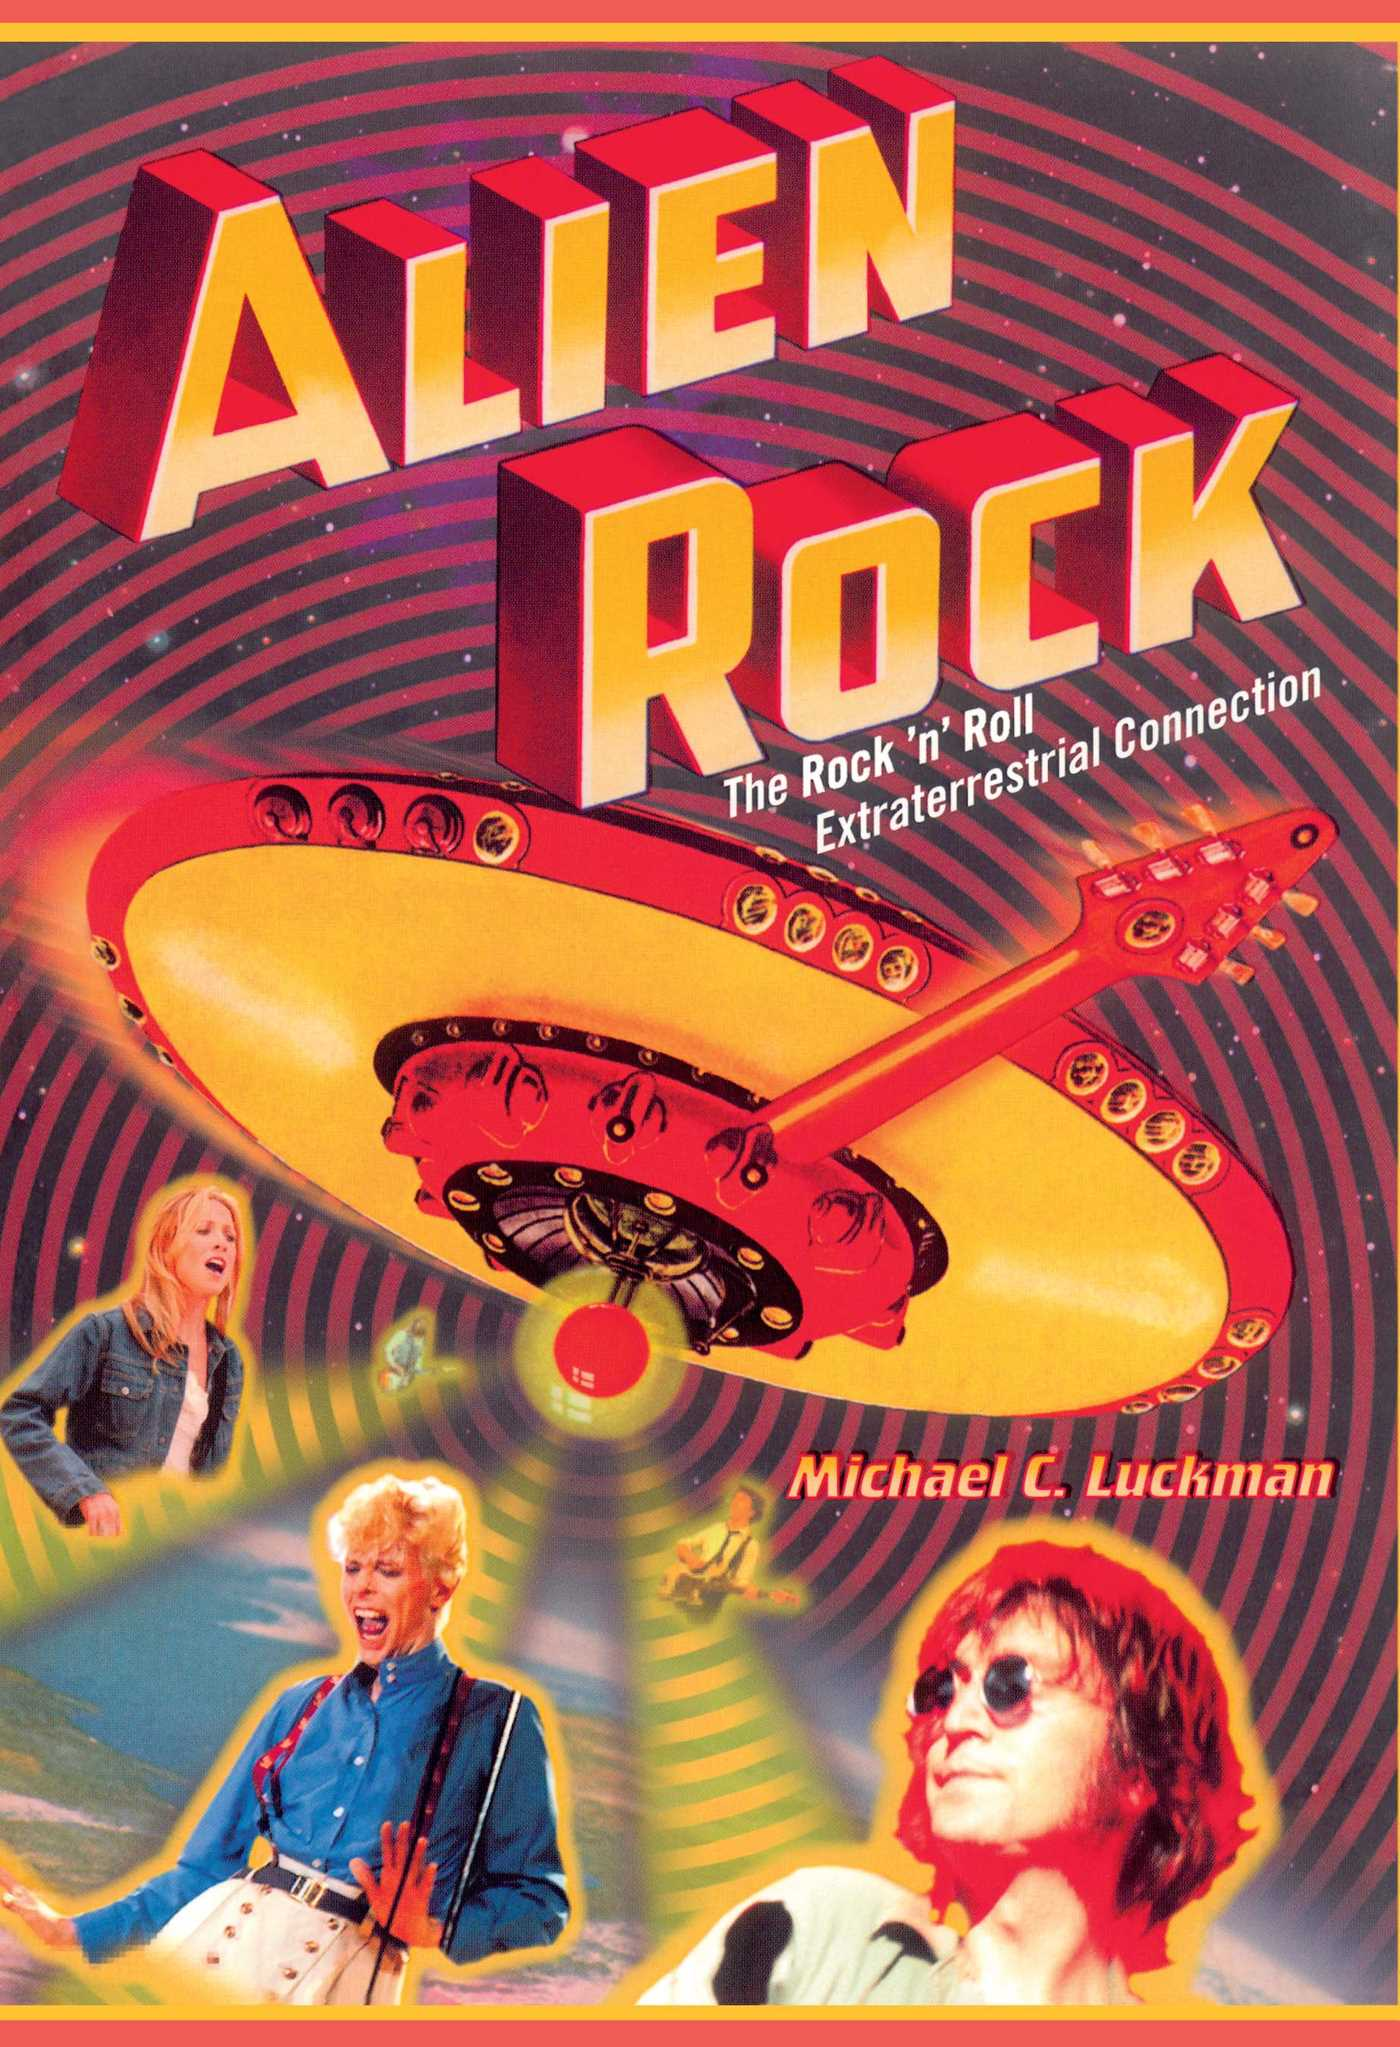 Alien-rock-9780743466738_hr